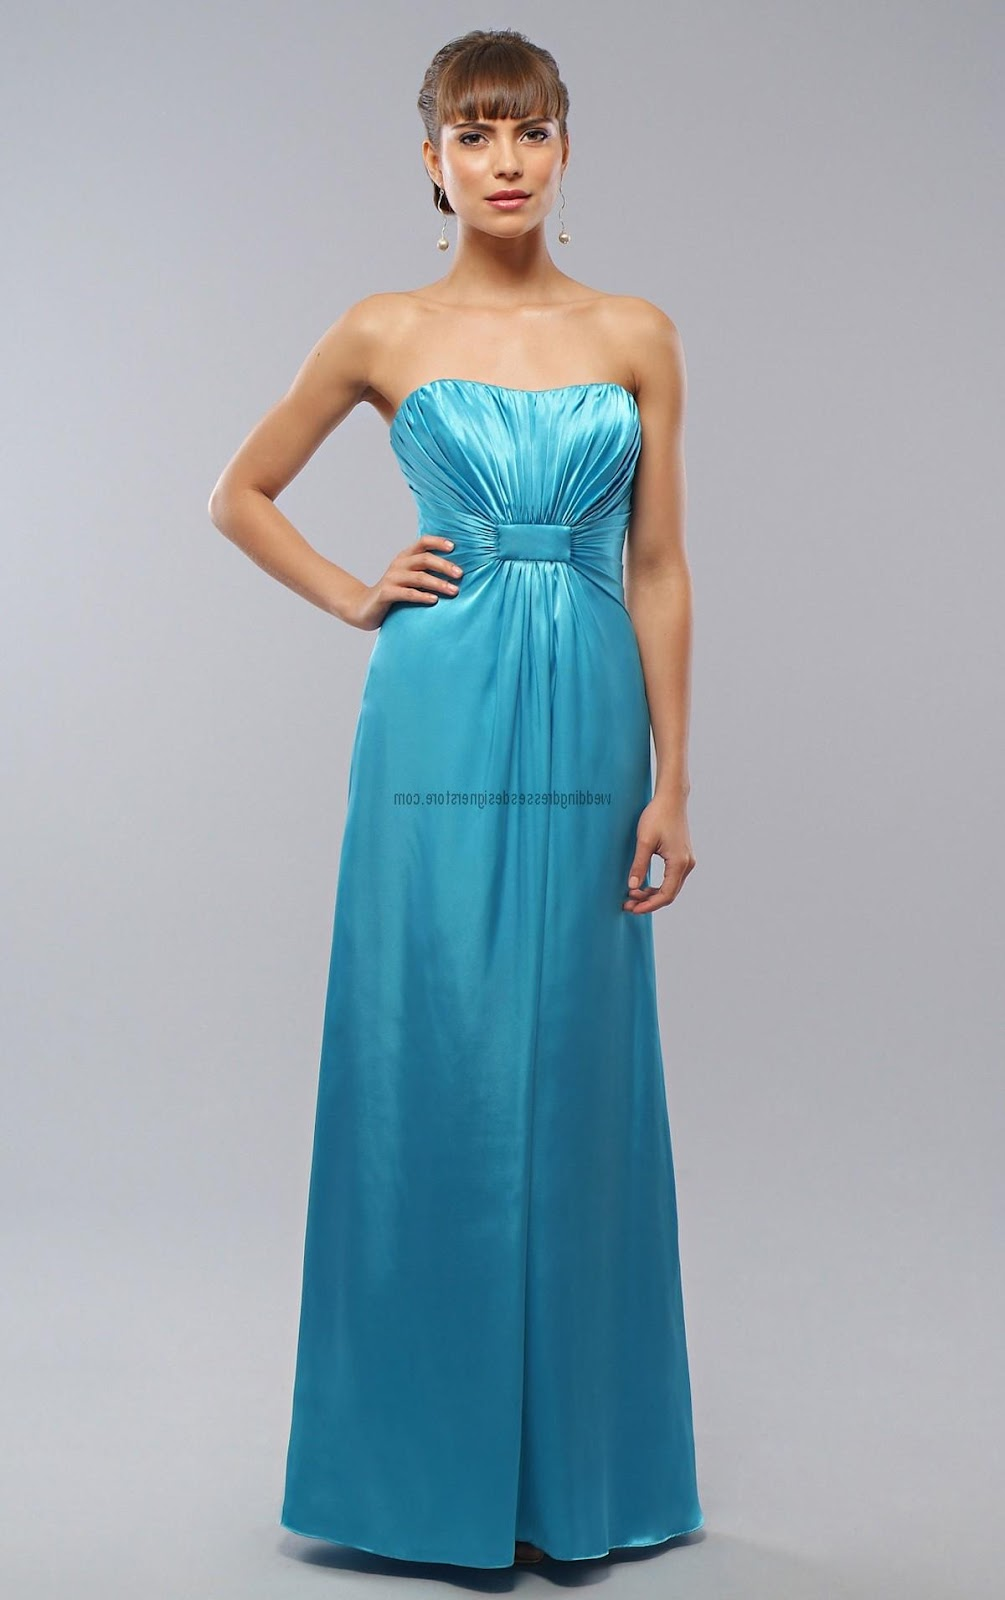 Ice Blue Bridesmaids Dress. Description; Contact Us